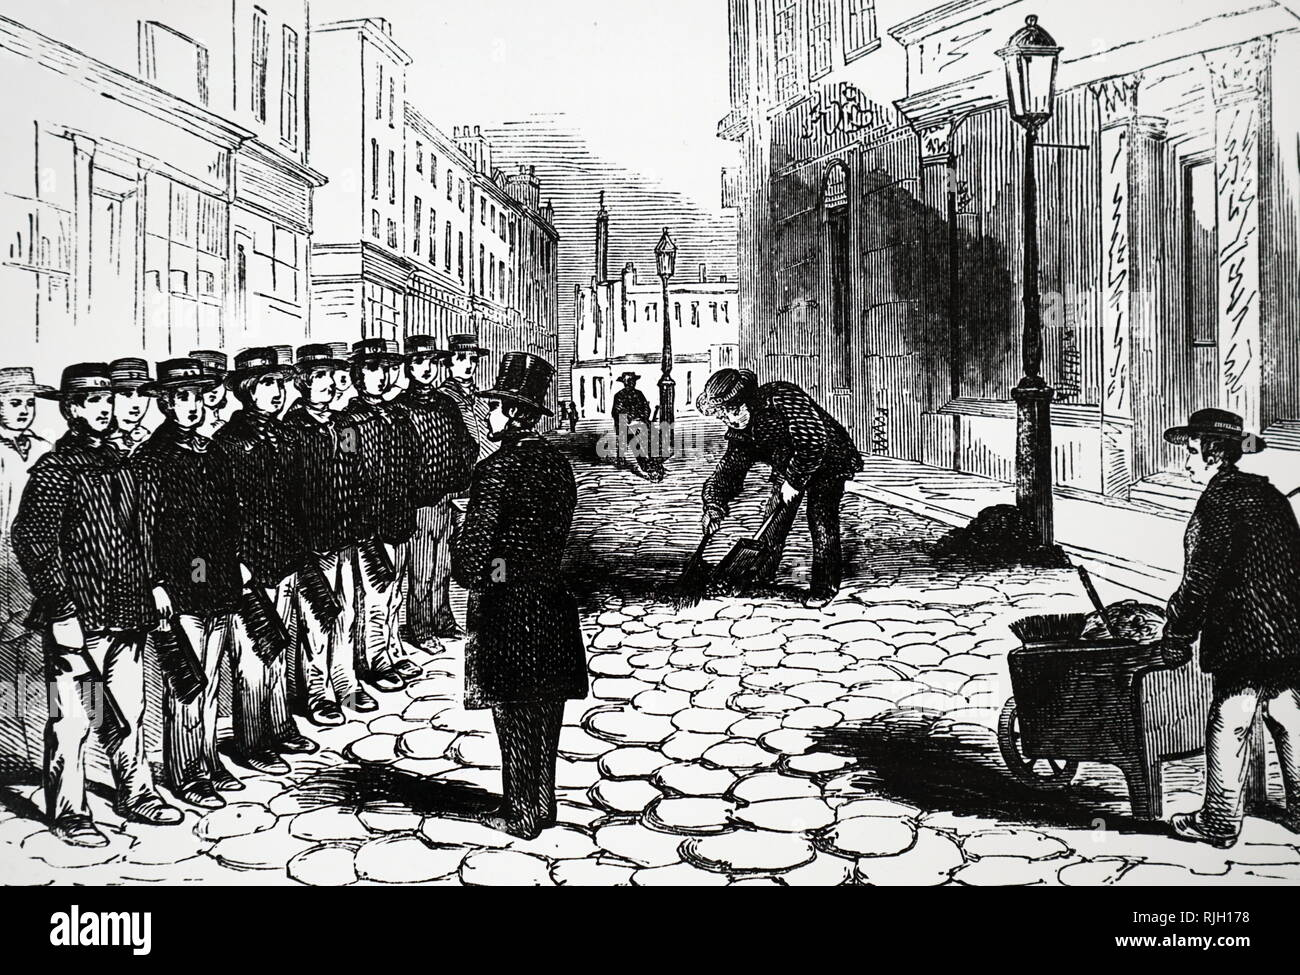 An engraving depicting London street orderlies being inspected before setting off on their rounds. Dated 19th century - Stock Image